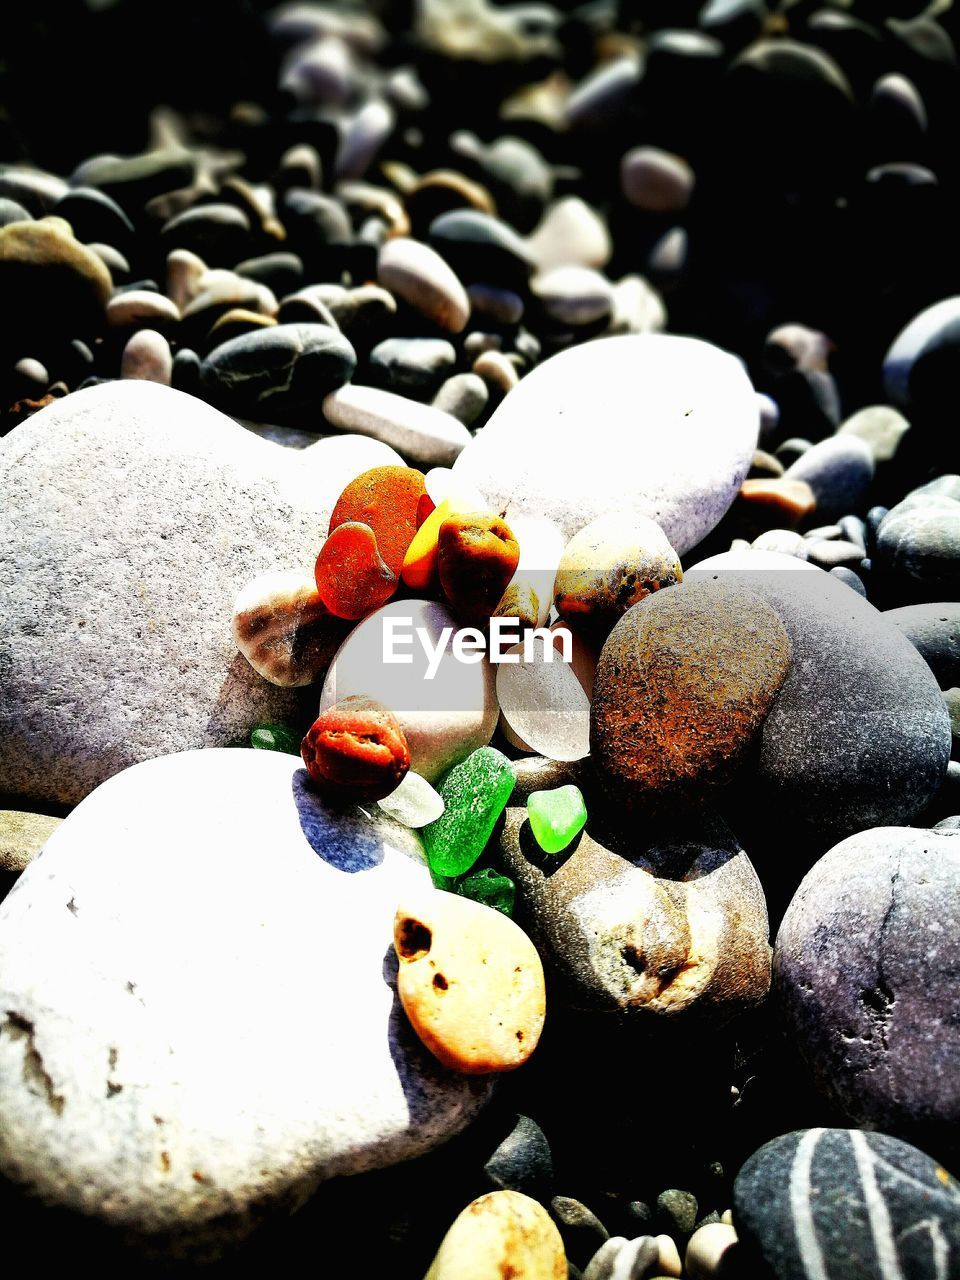 pebble, beach, nature, shore, sand, pebble beach, rock - object, outdoors, day, close-up, no people, full frame, water, beauty in nature